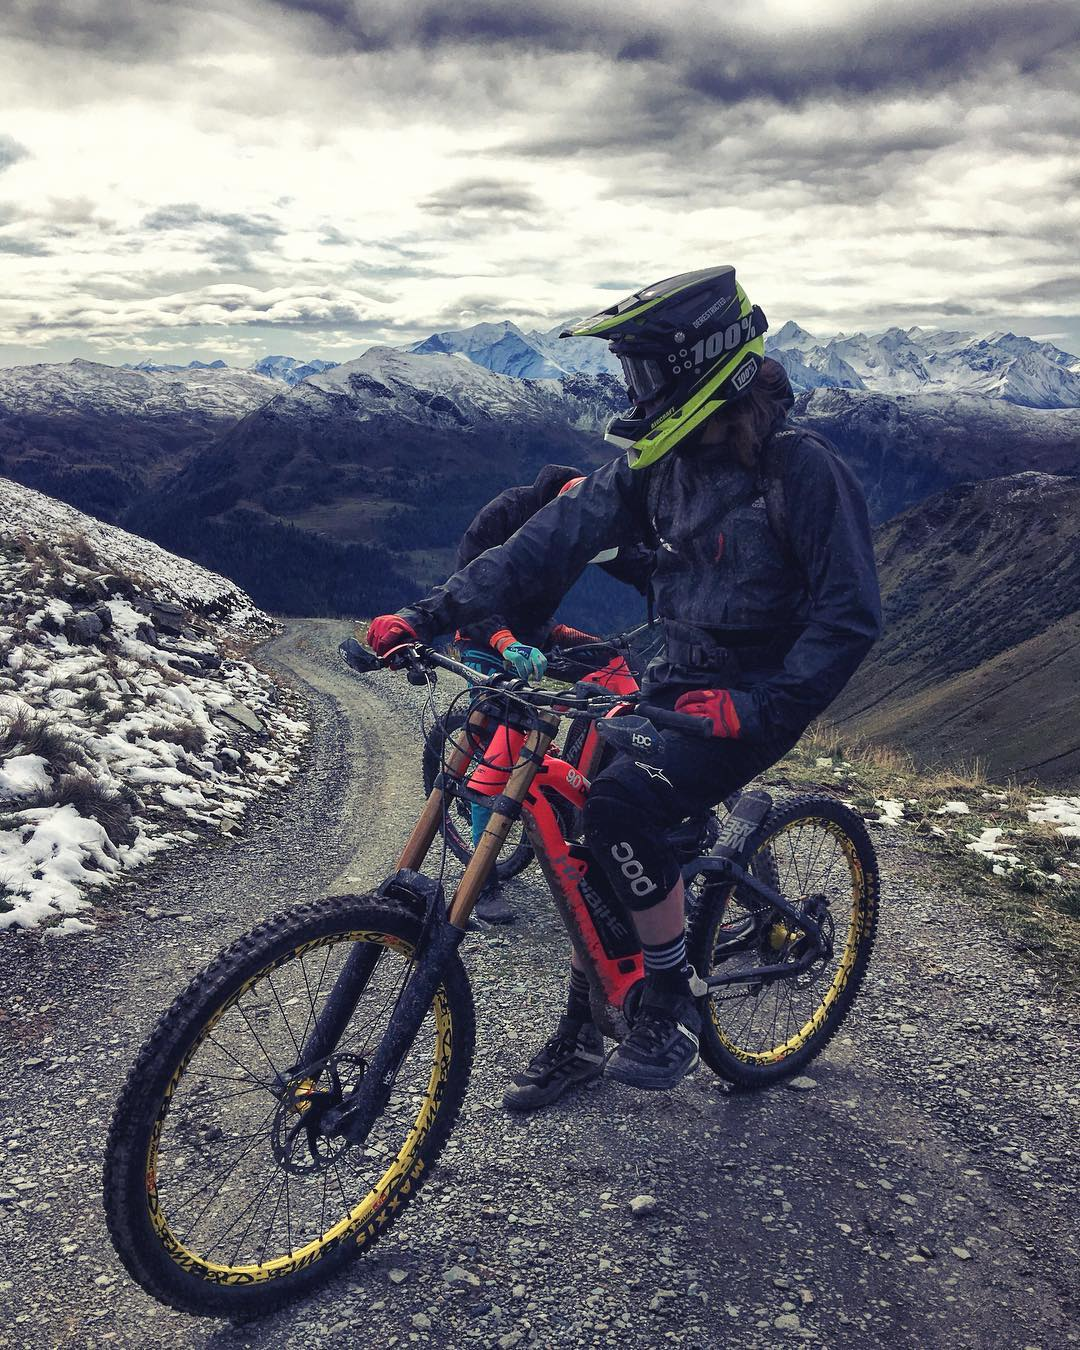 Top of the world. #haibike #xduro